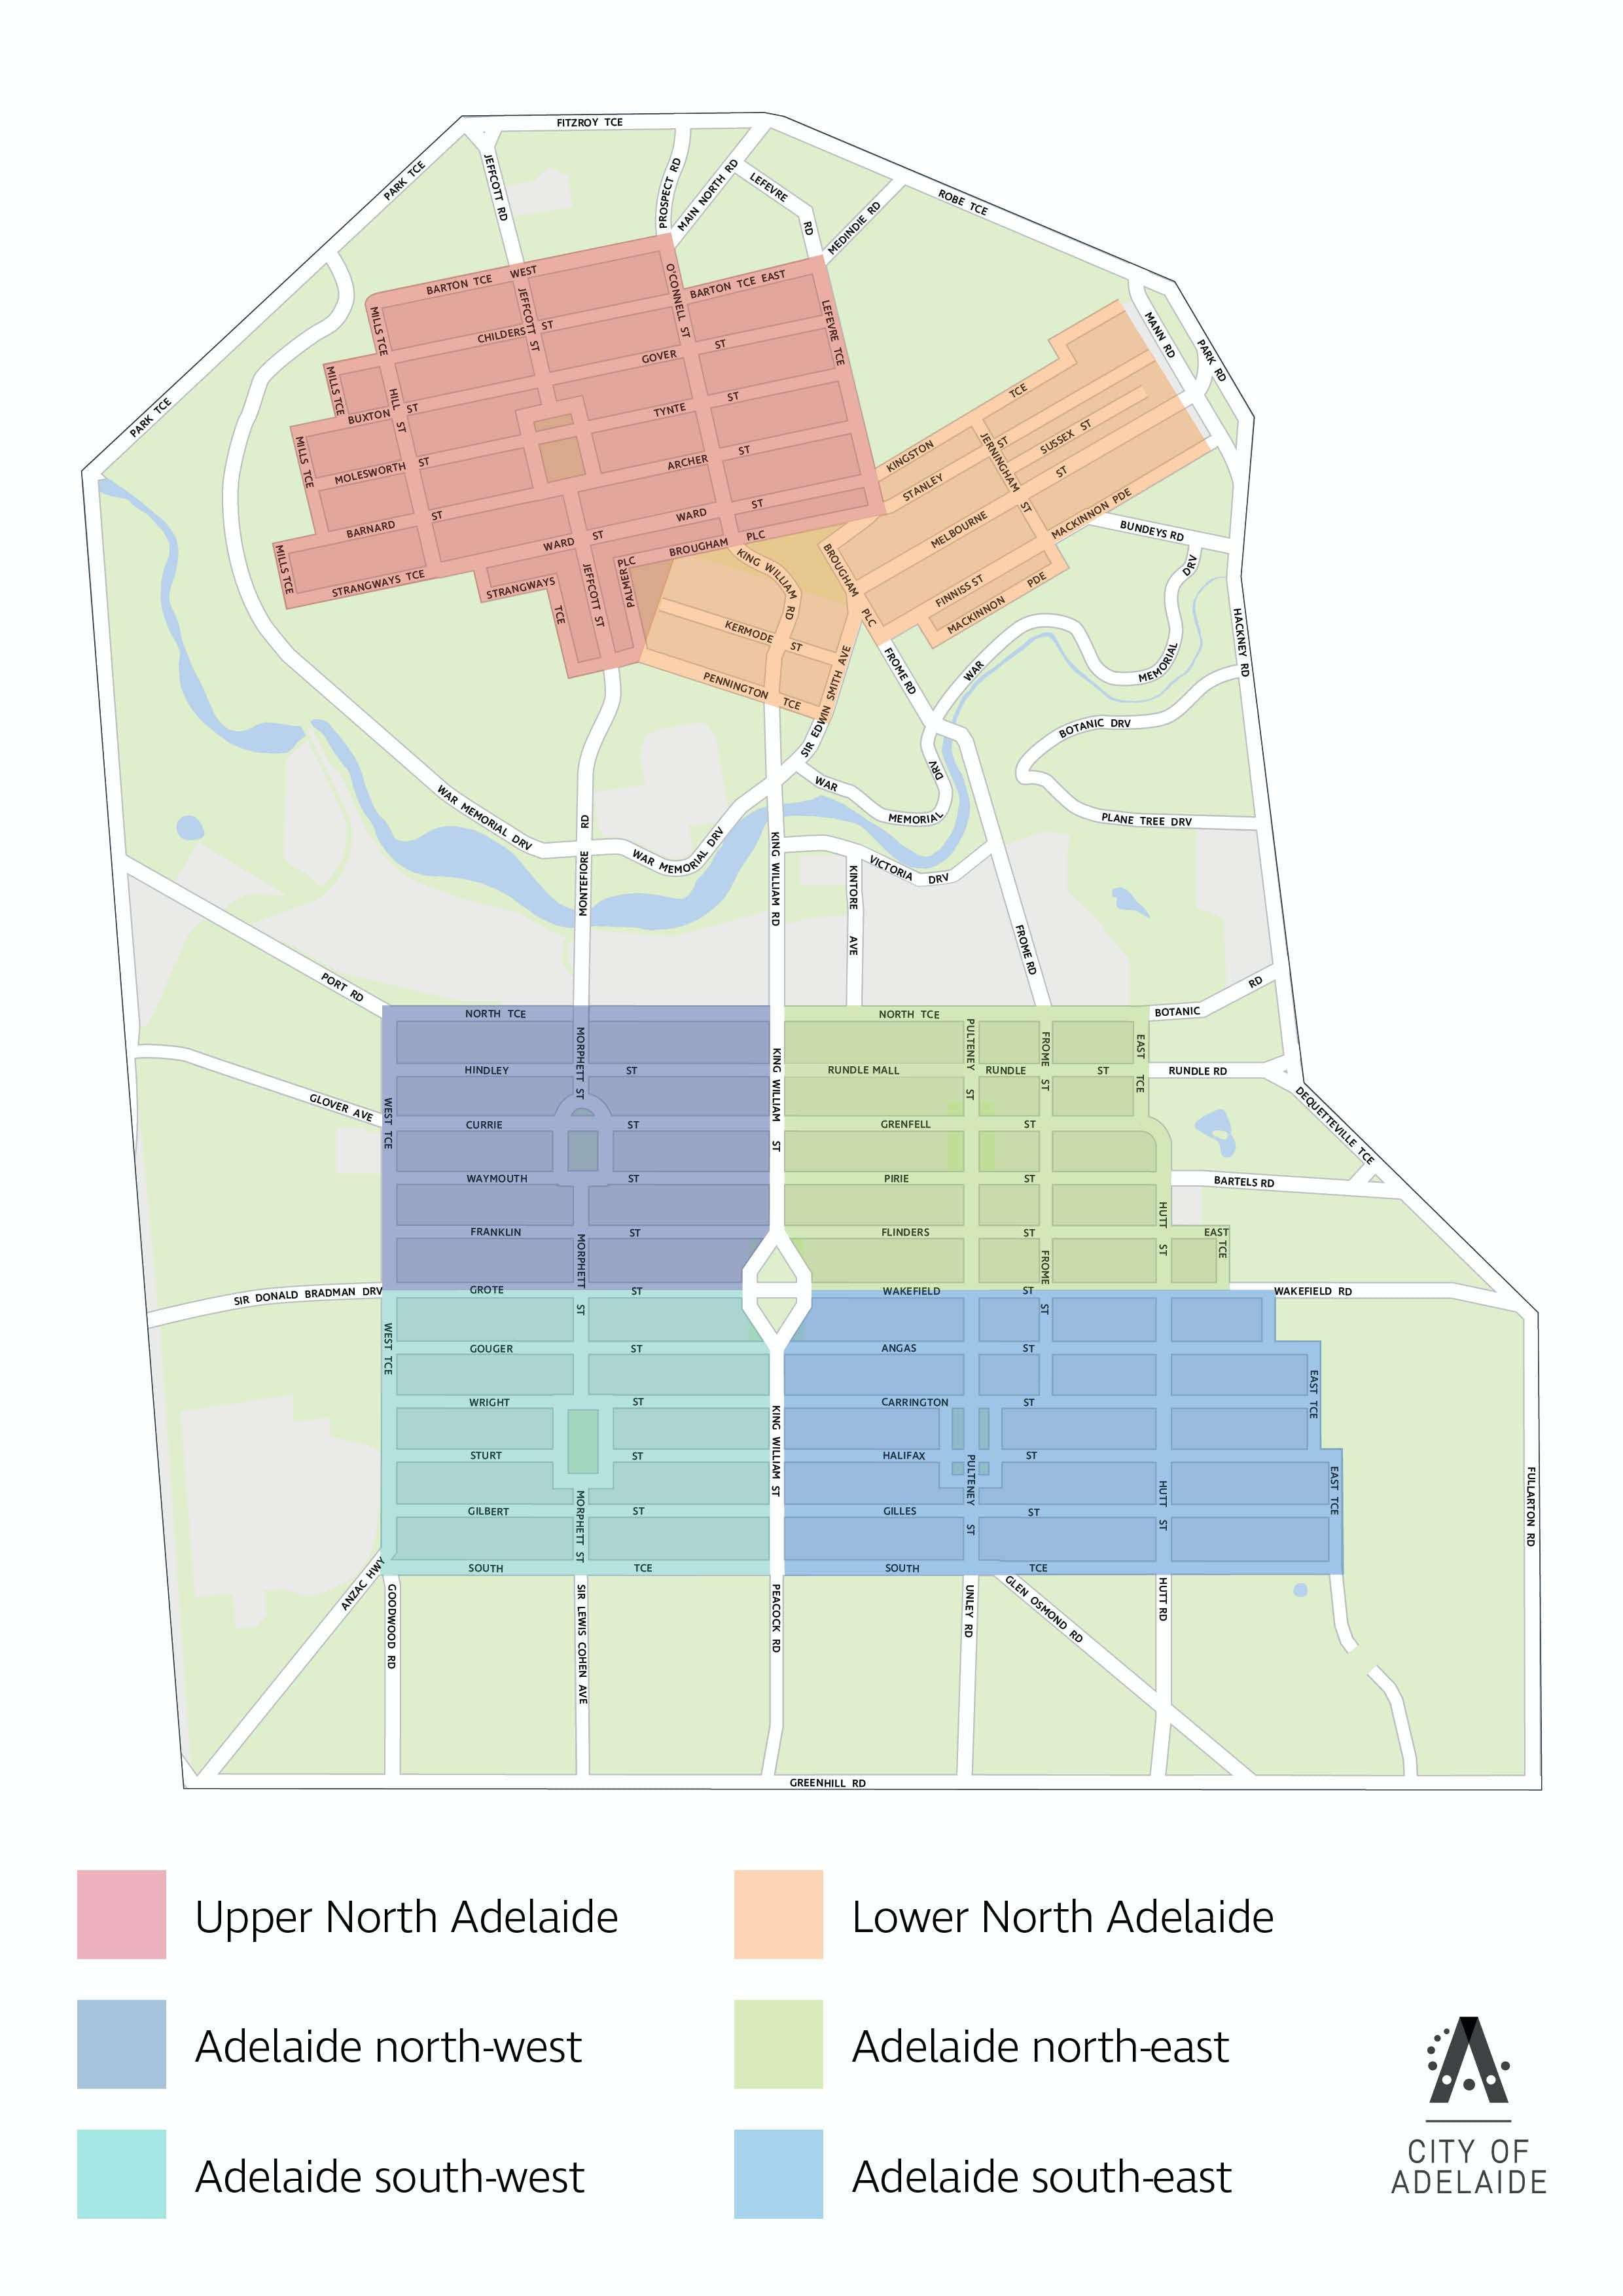 PAG19-005 Resident Survey_A4 Map.jpg